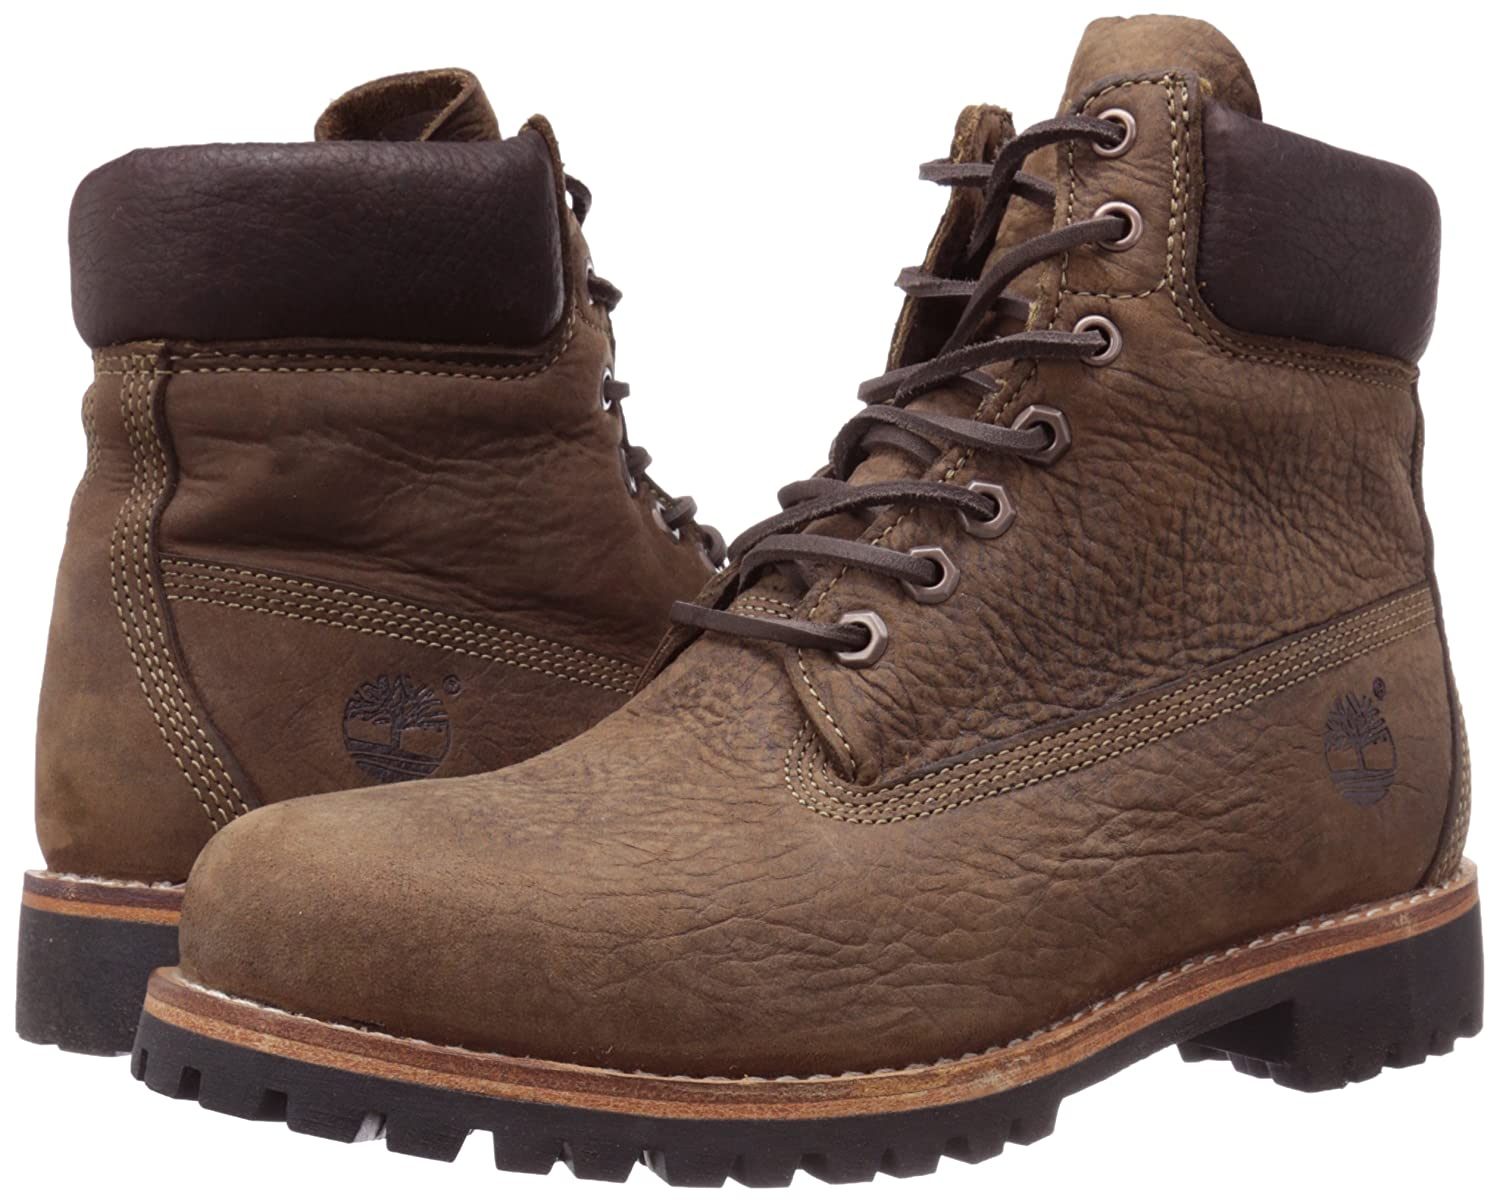 Timberland Heritage Ltd WP Chaussure Homme Marron Taille 41